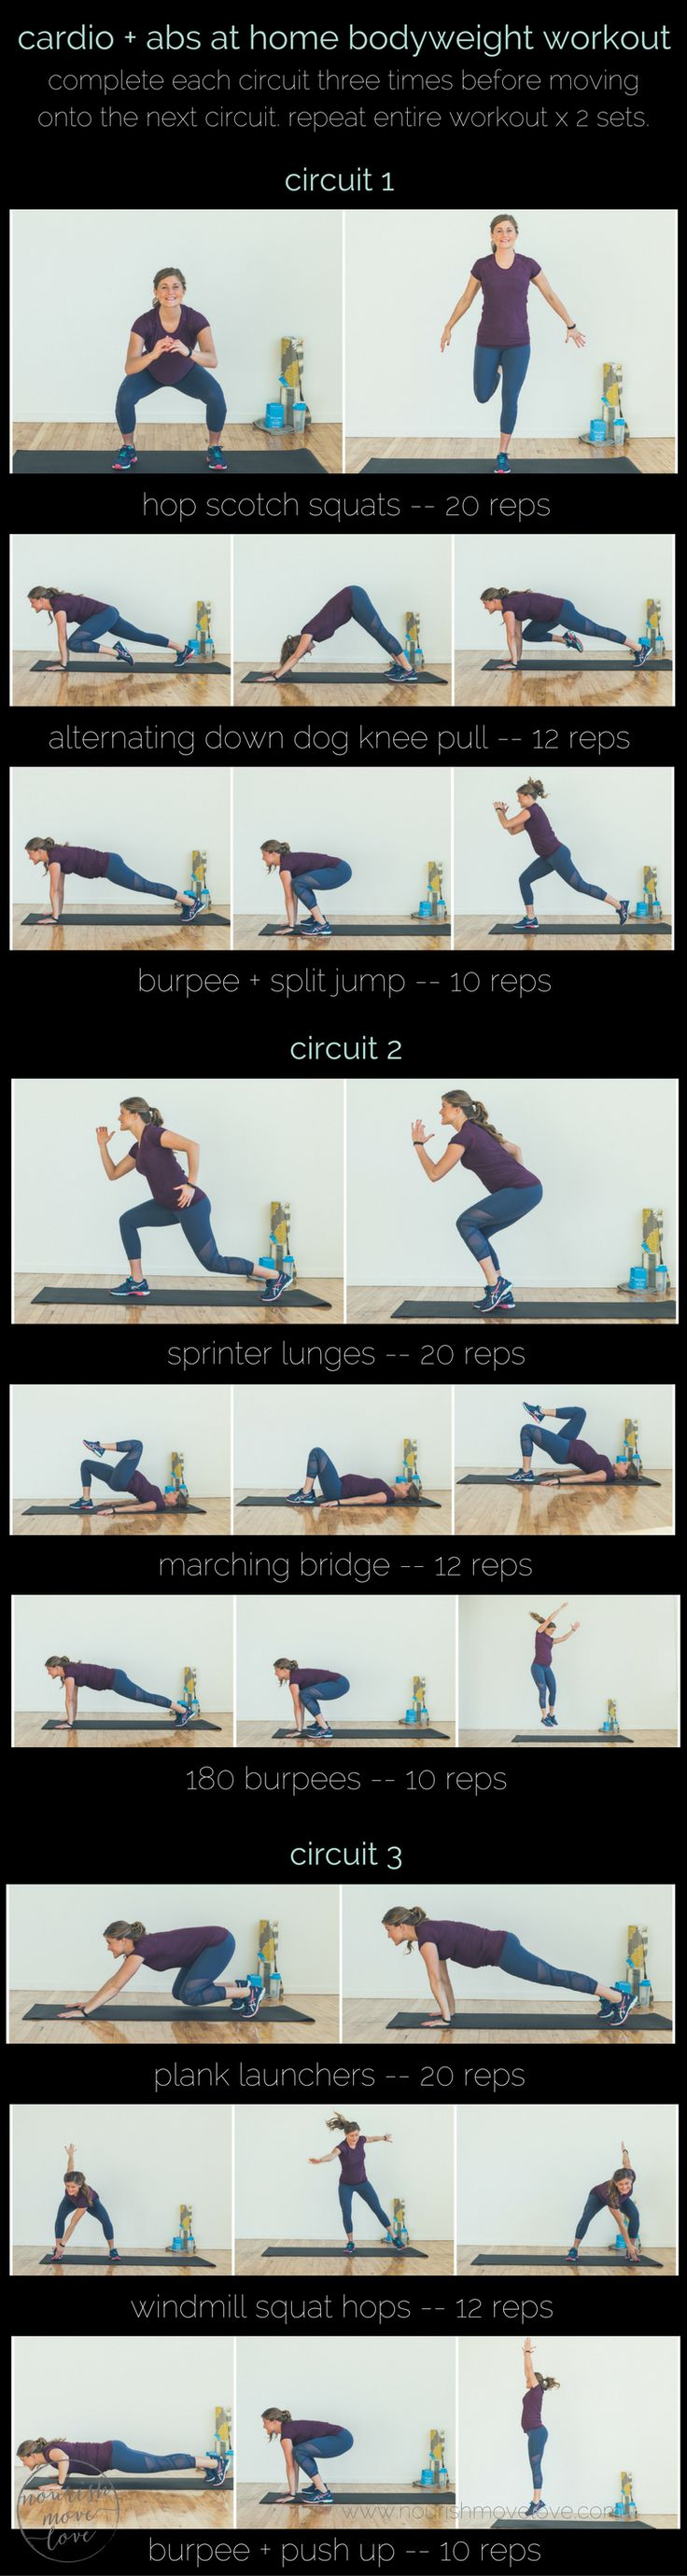 whether you're training at-home or traveling, this cardio + abs bodyweight workout consists of nine effective, no-equipment exercises that need to be part of your workout routine.